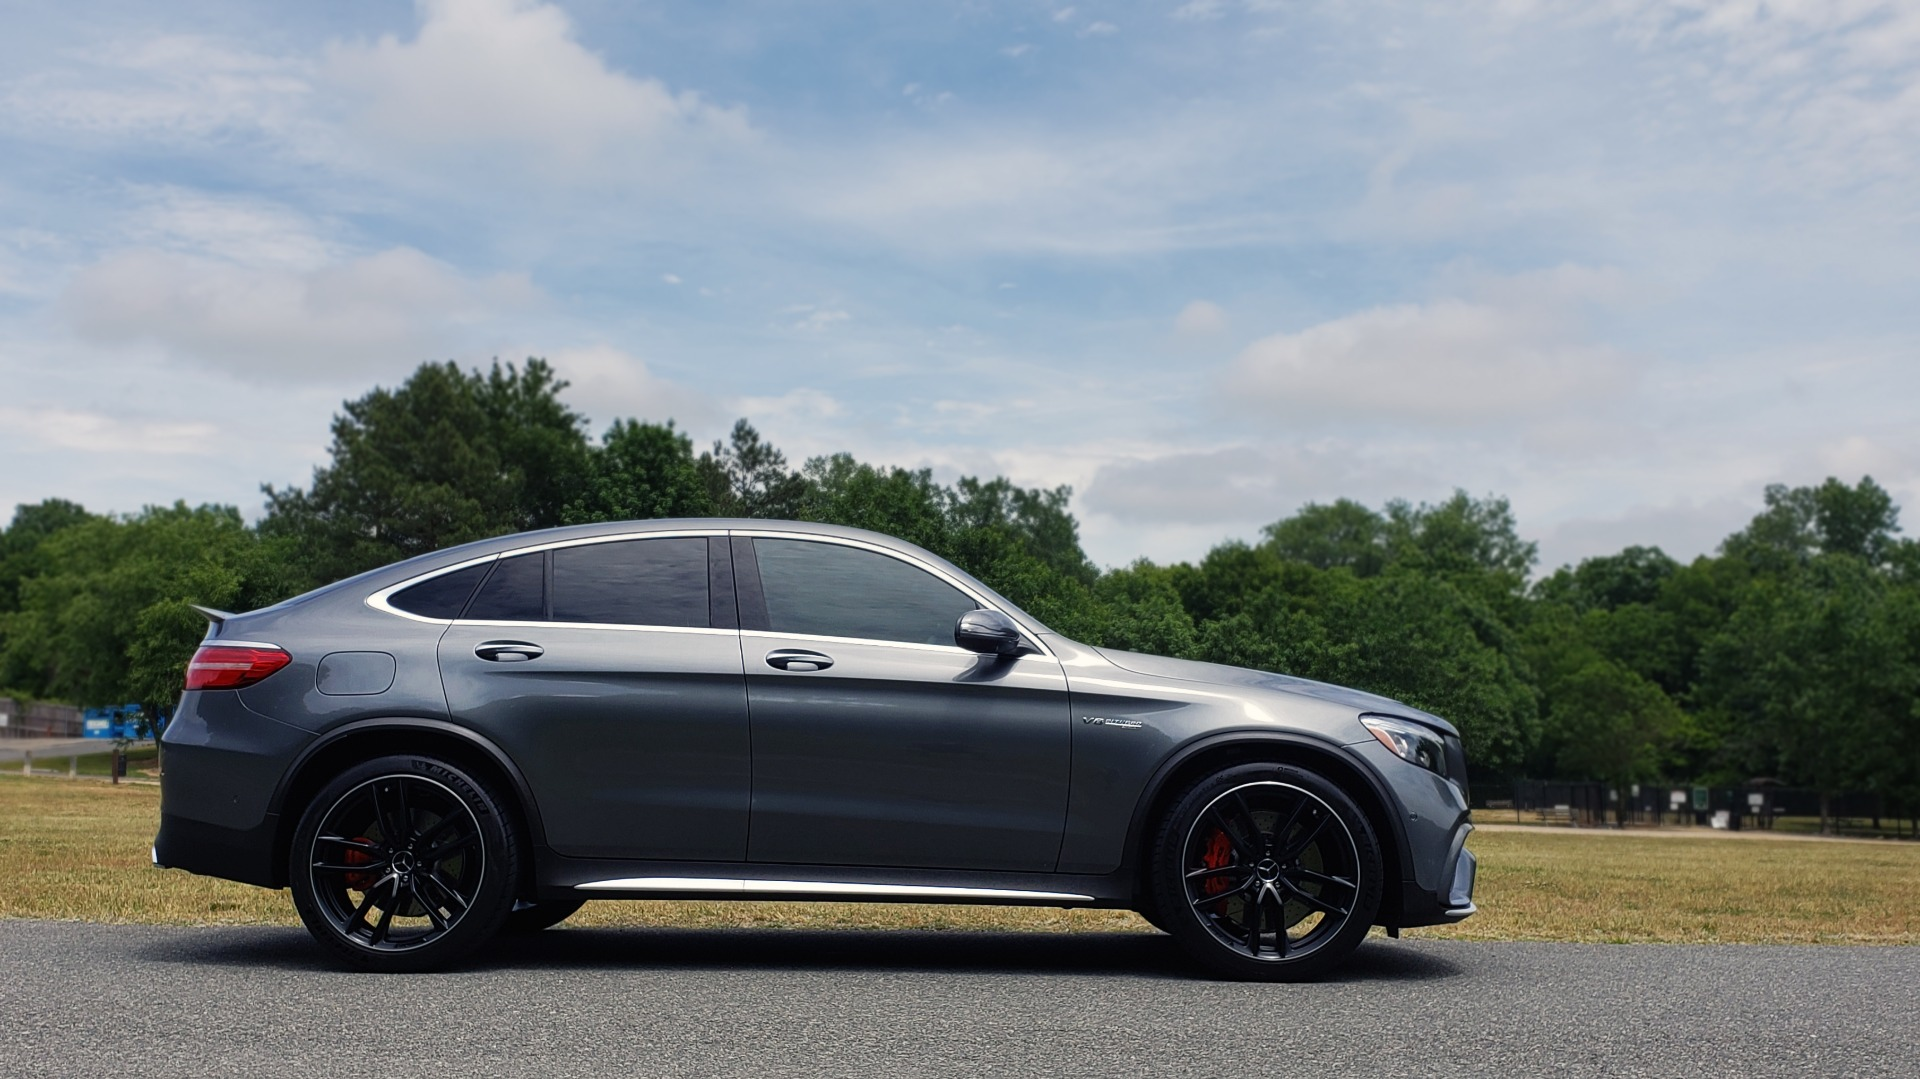 Used 2019 Mercedes-Benz GLC AMG 63 S 4MATIC COUPE / NAV / TRACK PACE APP / AMG PERF EXH / MULTIMEDIA for sale Sold at Formula Imports in Charlotte NC 28227 13